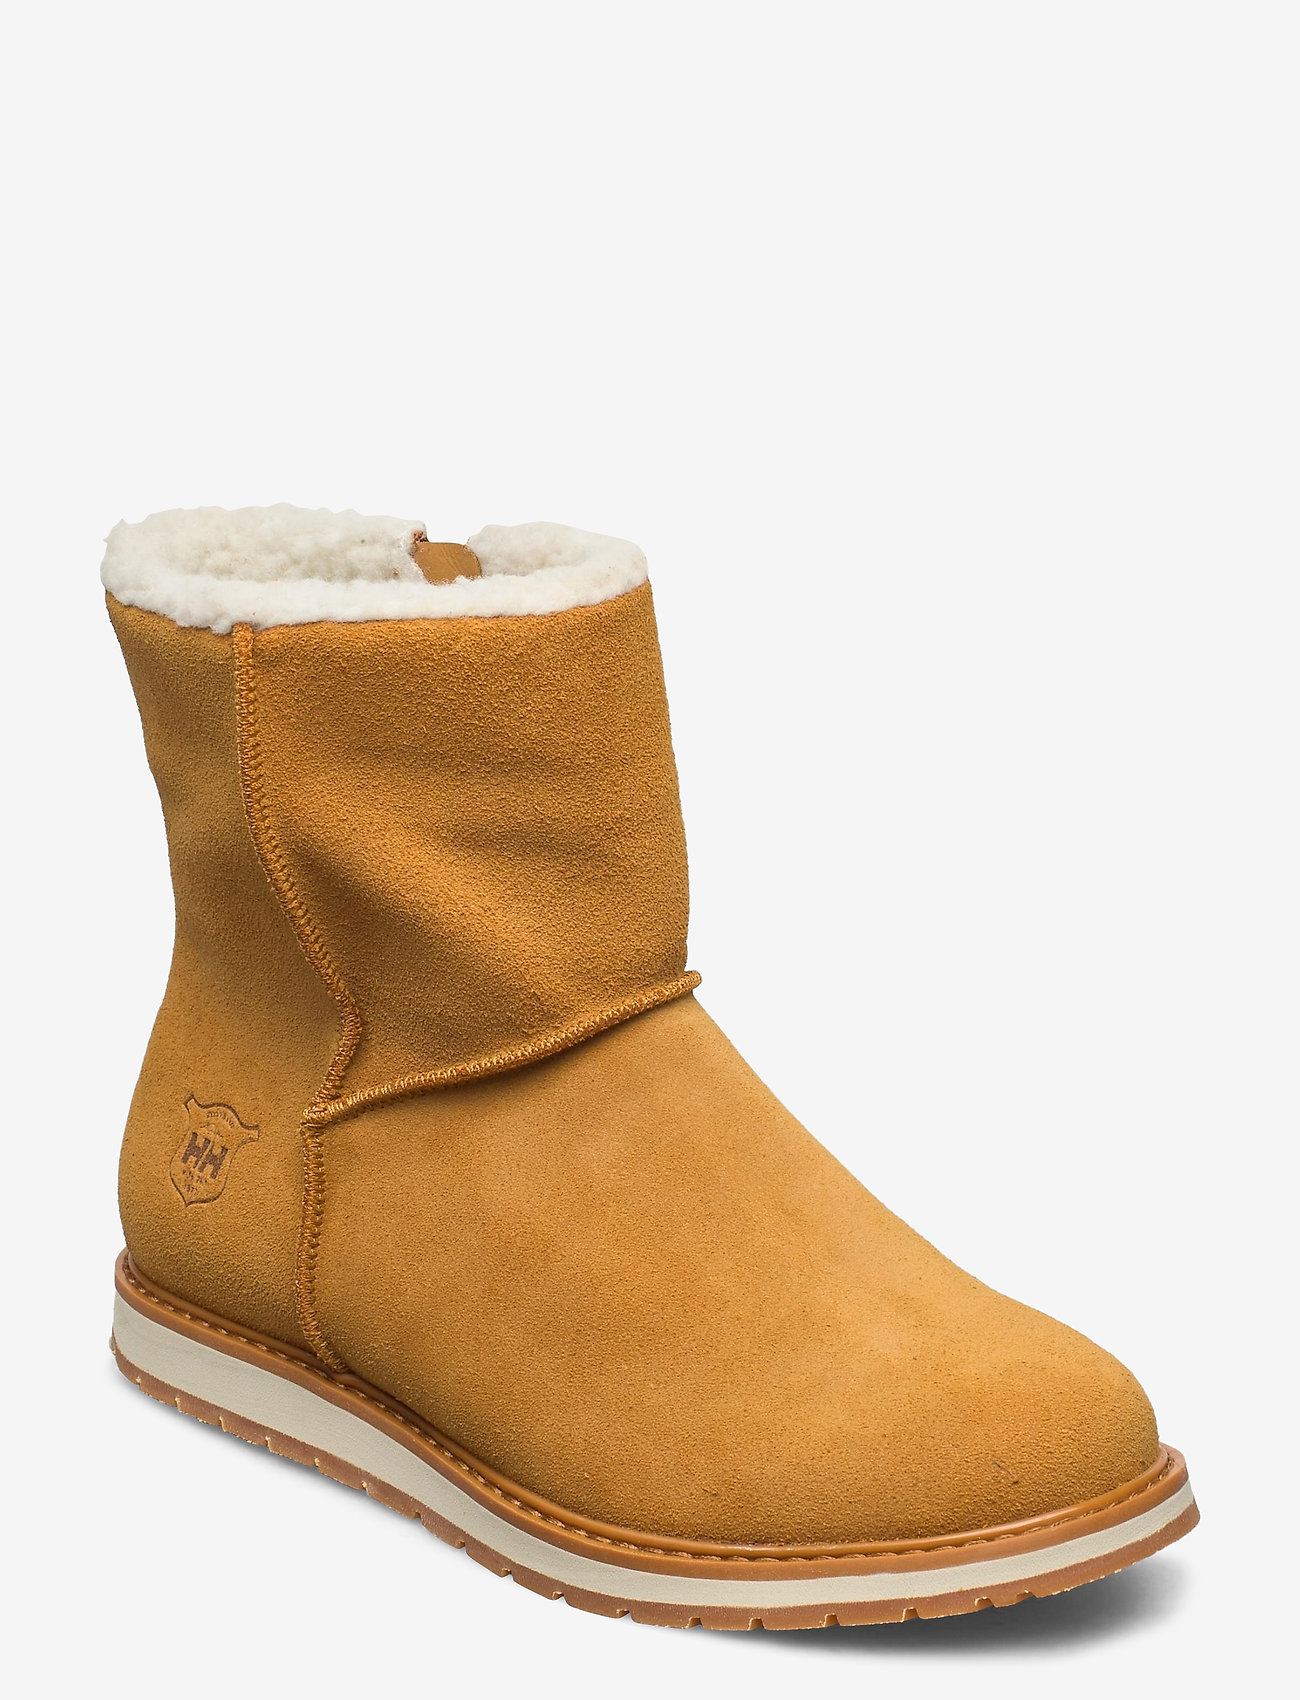 Helly Hansen - W ANNABELLE BOOT - flat ankle boots - 726 new wheat / natura / light - 0